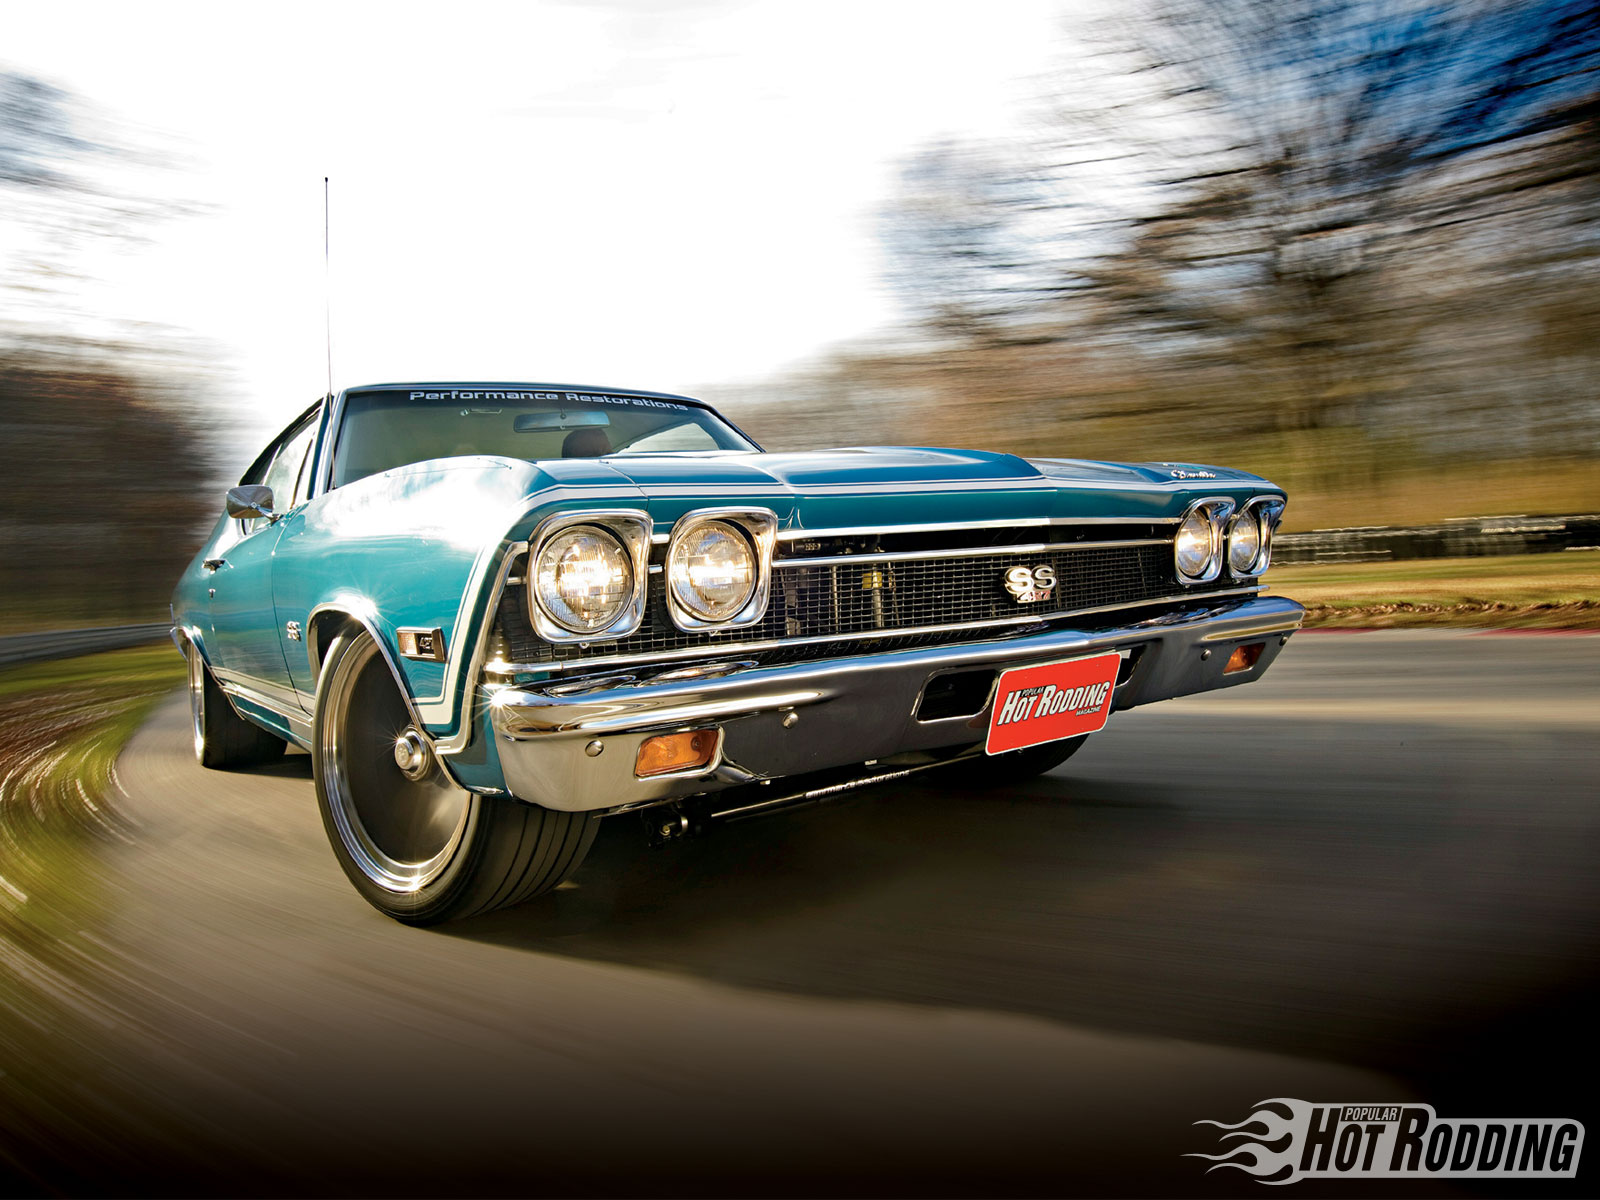 Chevelle Ss Wallpaper 1968 Chevy Chevelle Ss 900 H P Wallpaper And Background Image